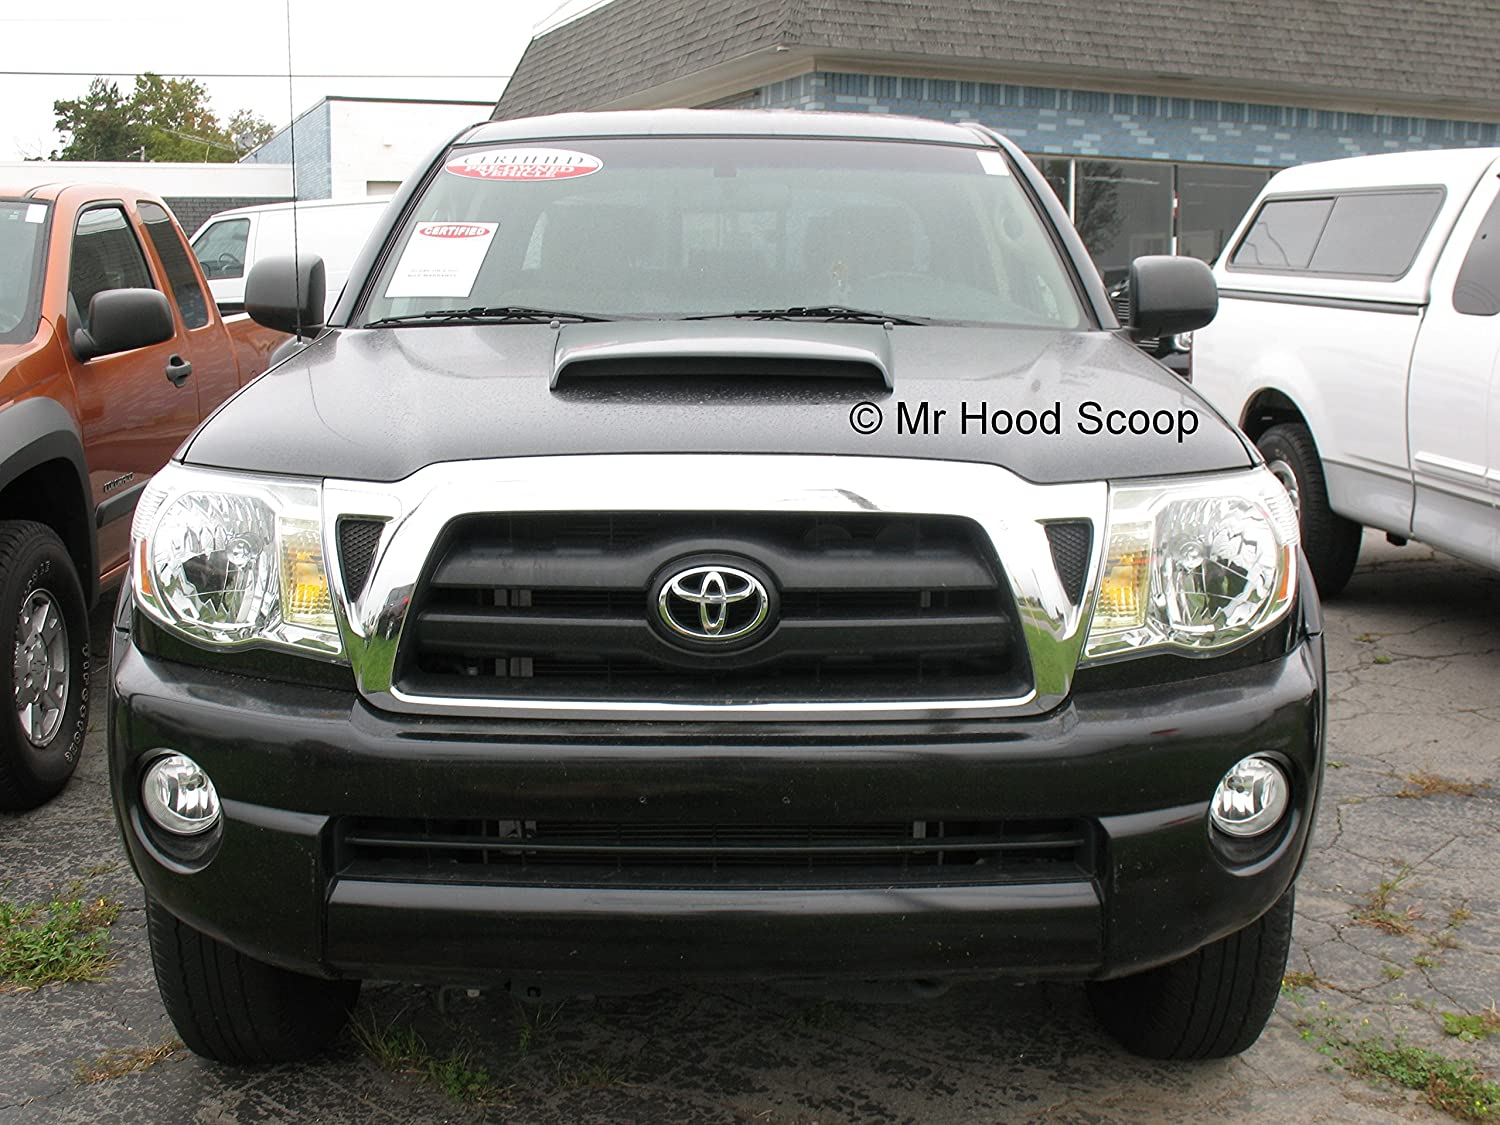 Xtreme Autosport Unpainted Hood Scoop Compatible with 1995-2018 Toyota Tacoma by MrHoodScoop HS003